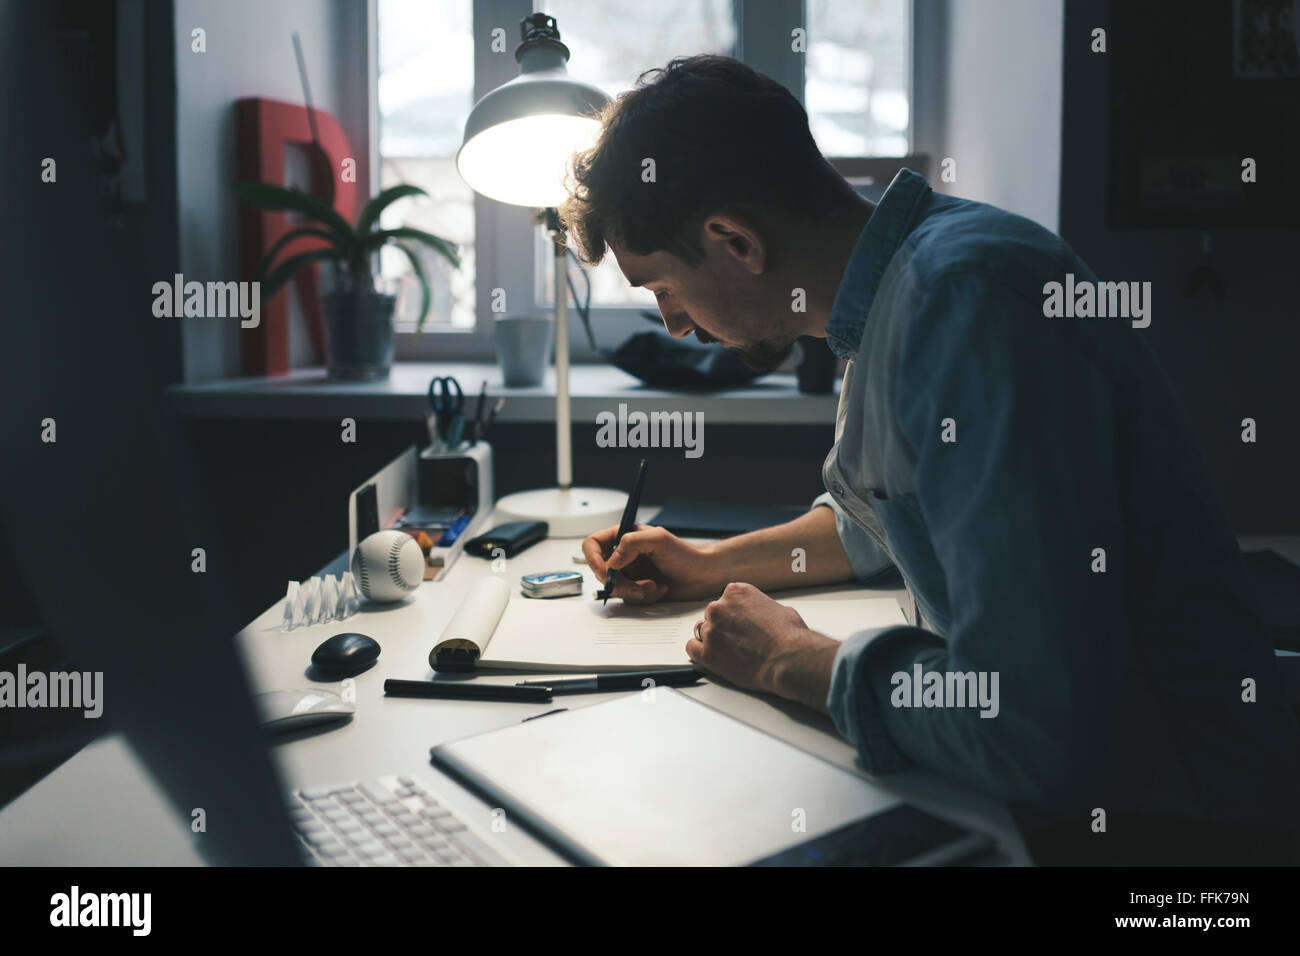 Designer at work in office - Stock Image